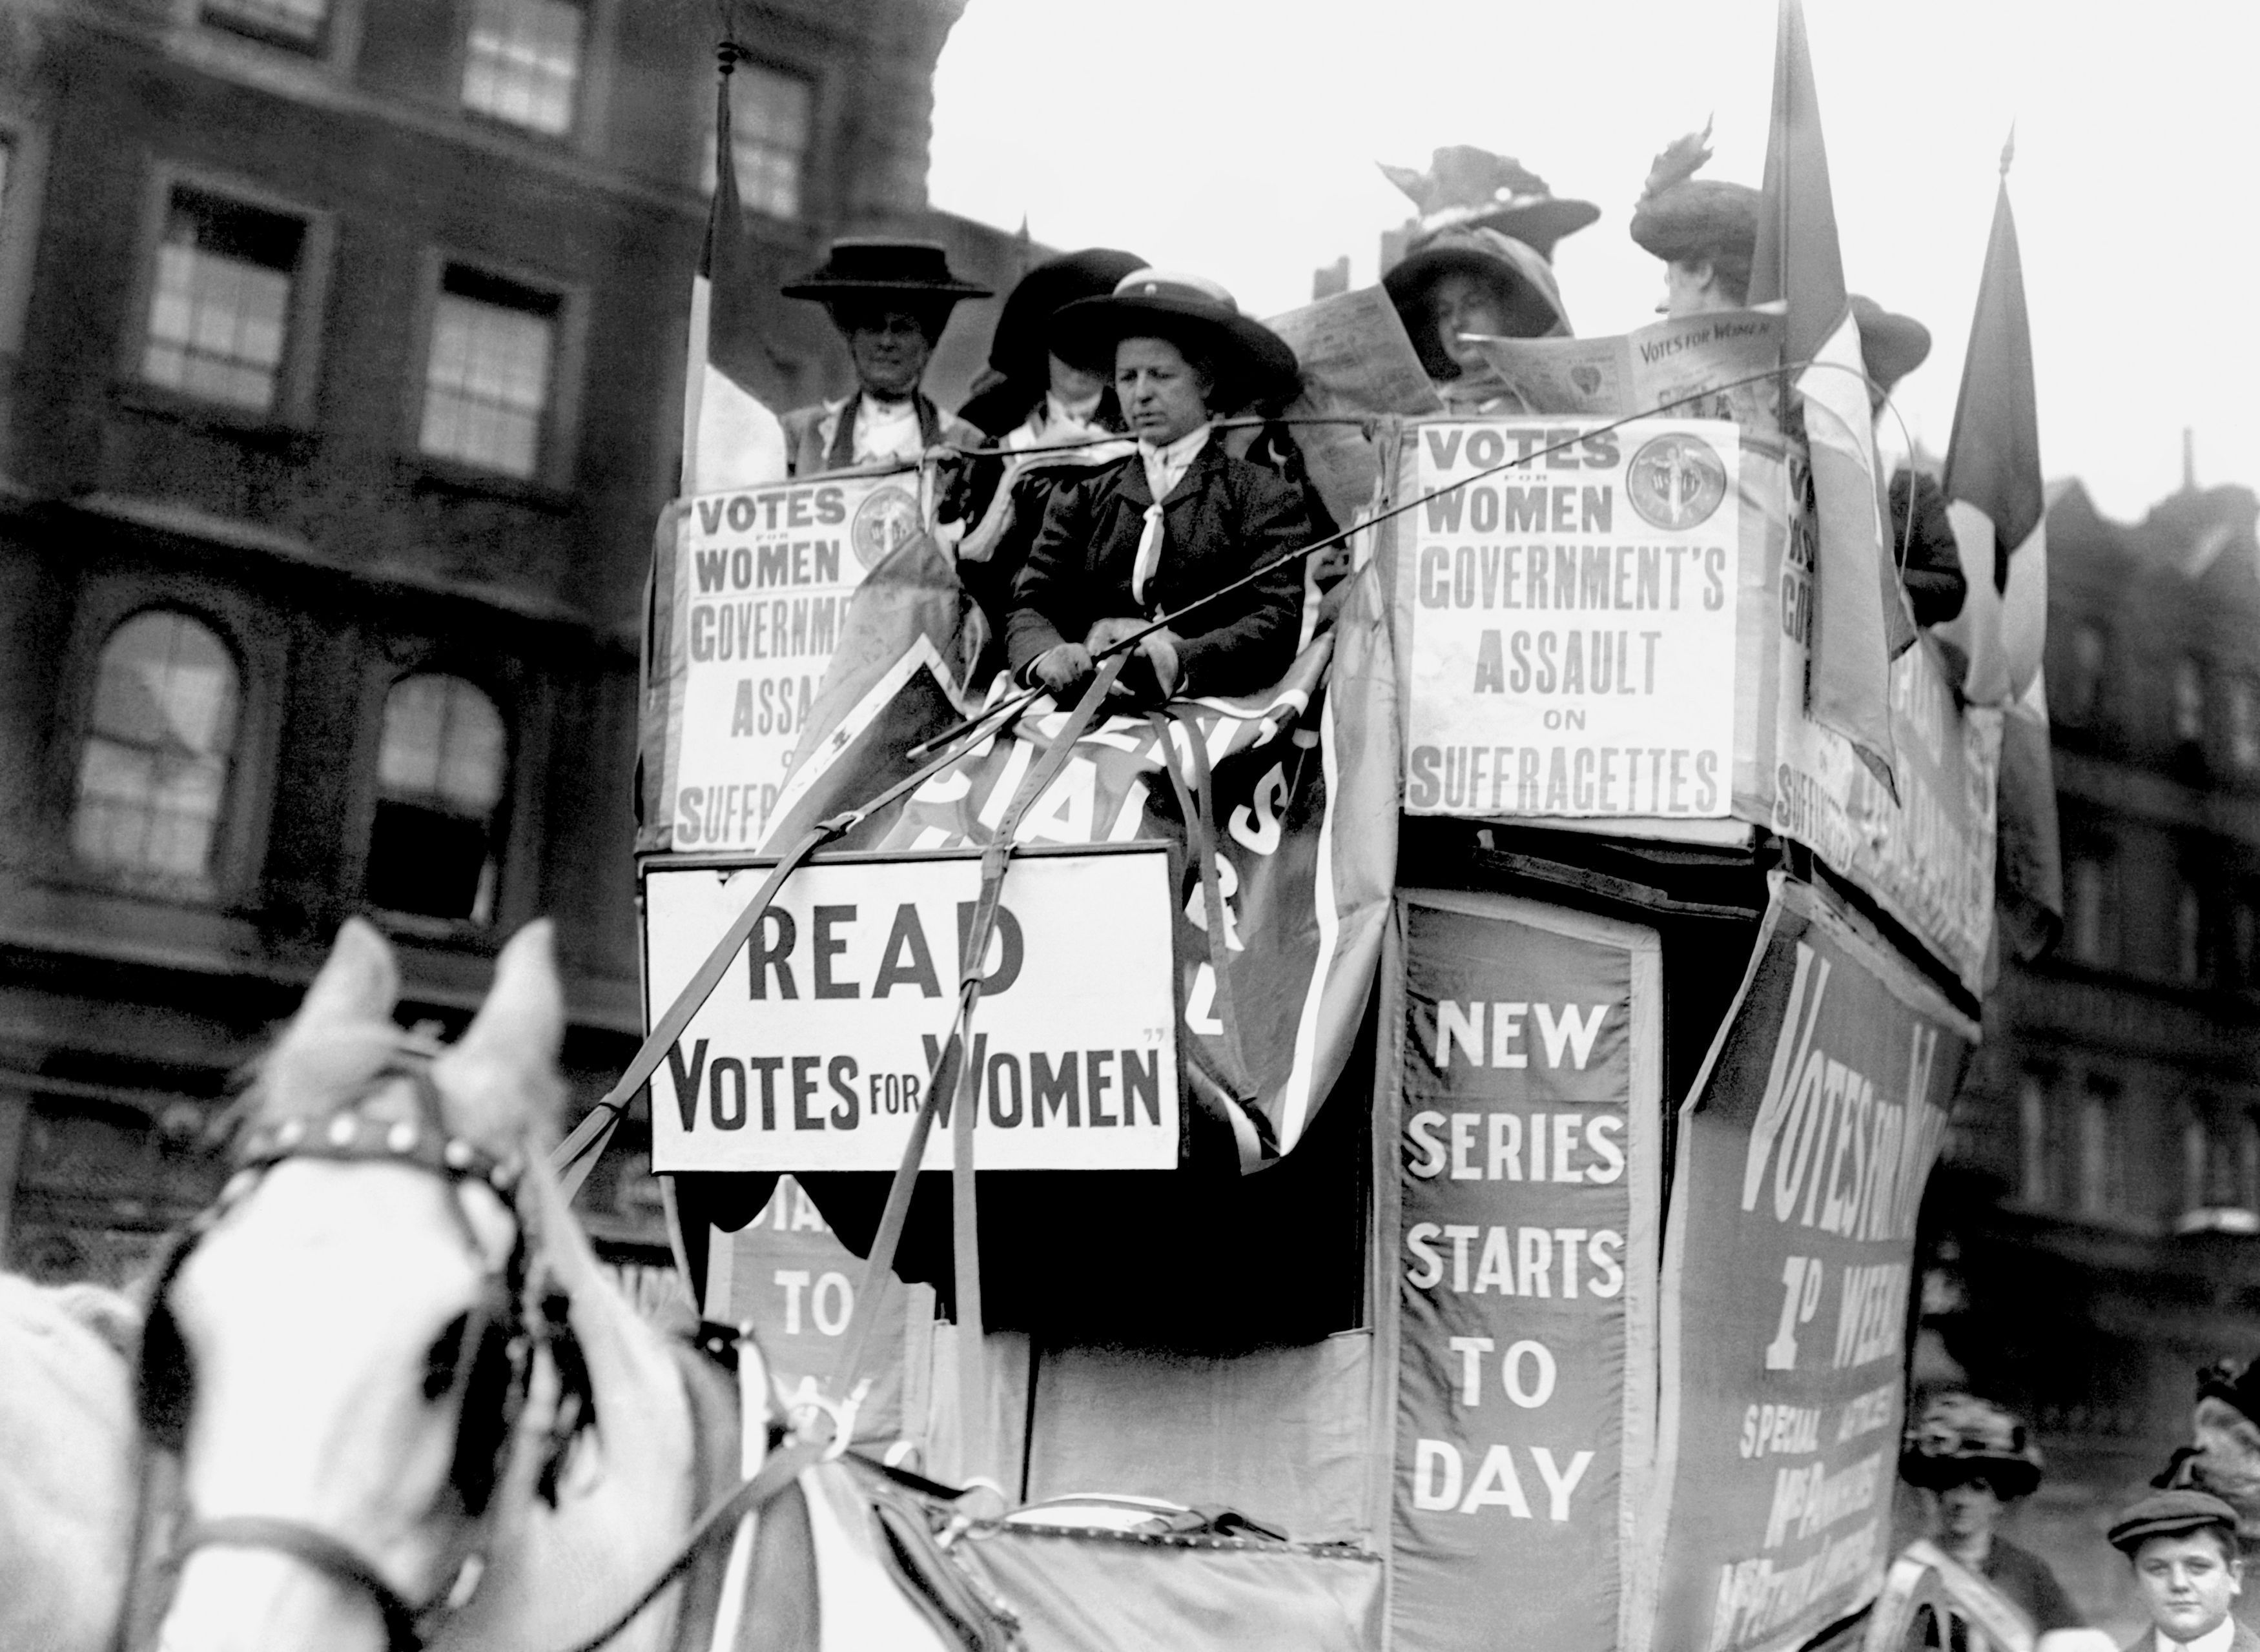 Members of the Women's Social and Political Union (WSPU) on a horse-drawn carriage driven by Emmeline Pankhurst in 1910 (PA)